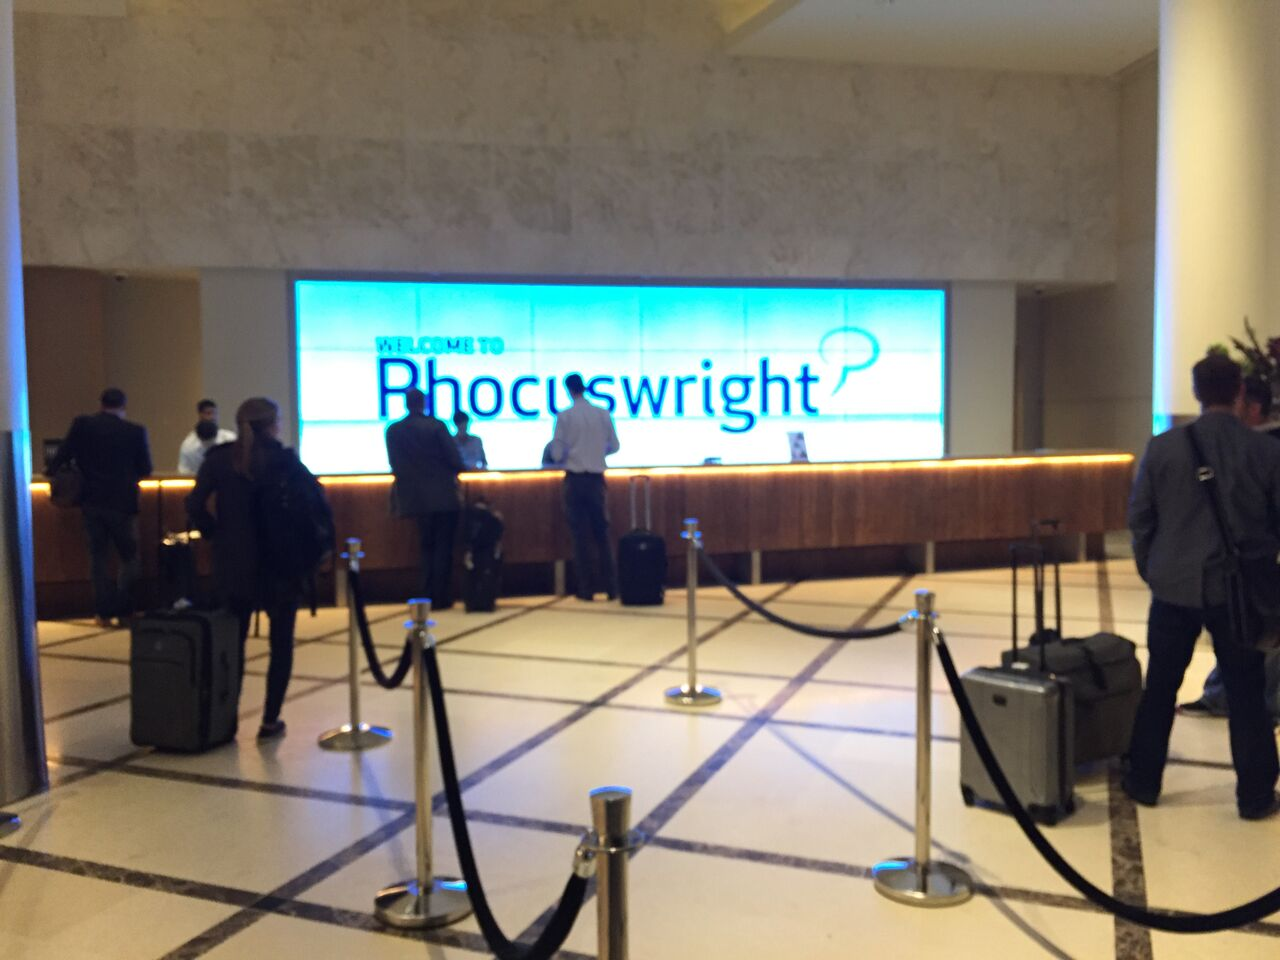 Phocuswright Conference -- Day 1